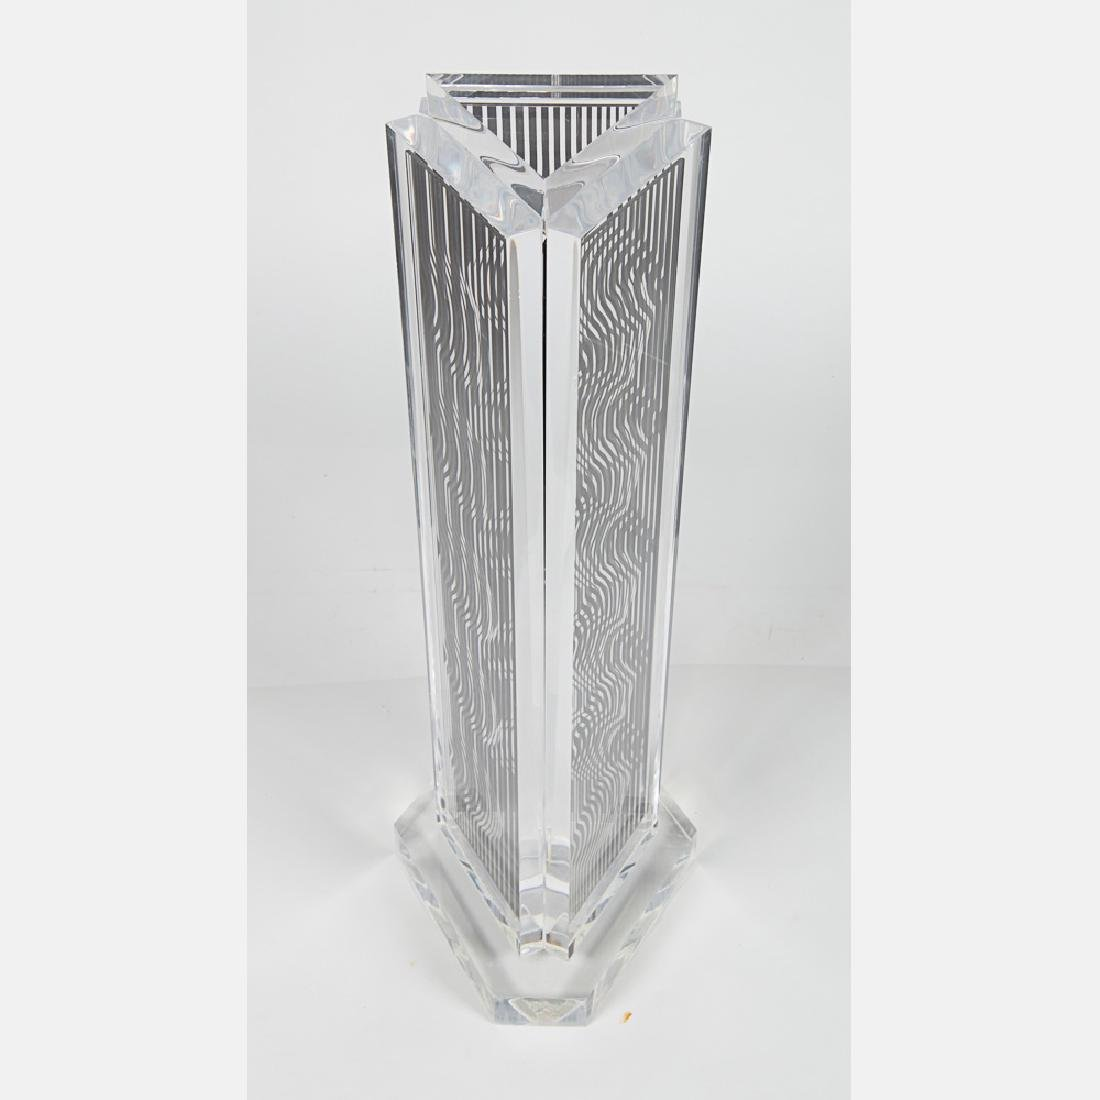 Victor Vasarely (1906-1997) Moire Tower, 1988, Perspex - 3